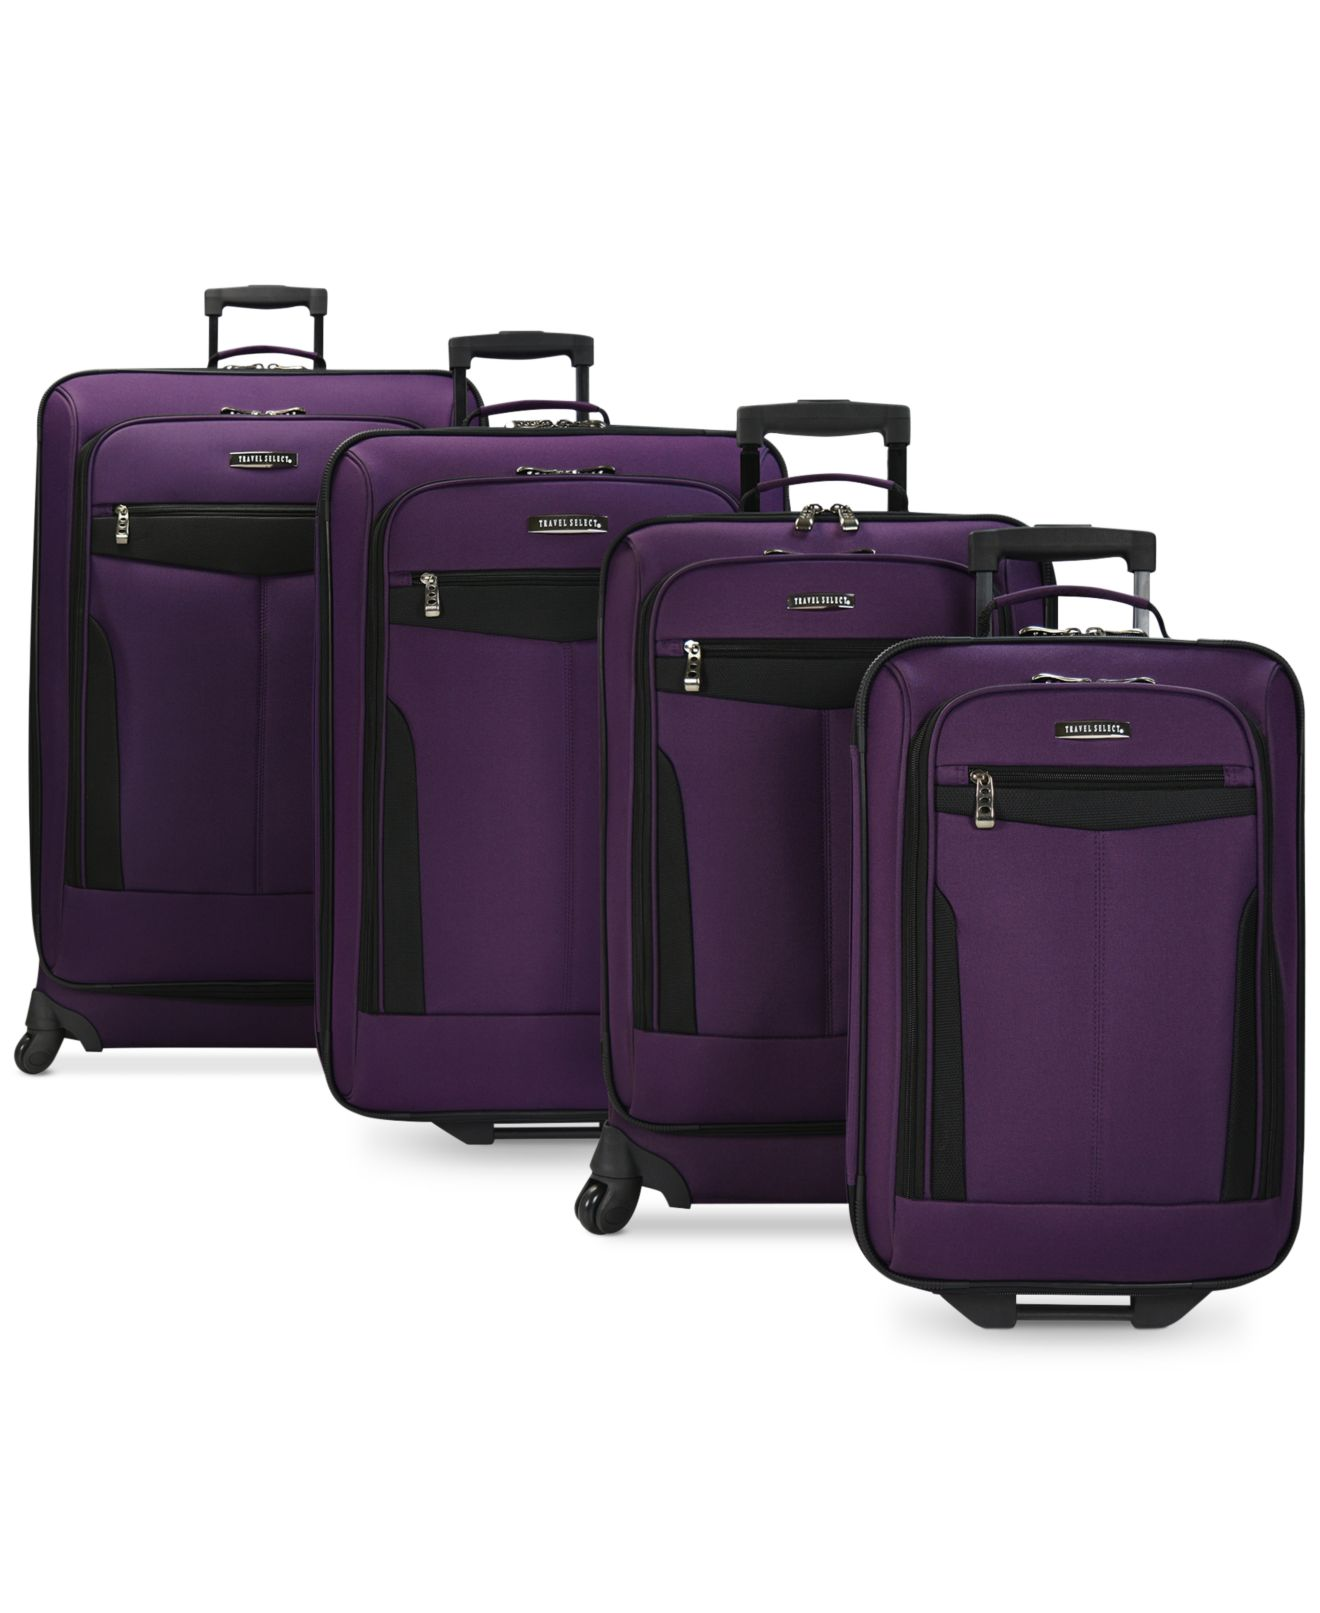 Travel Select Segovia 4 Piece Spinner Luggage Set, Only at Macy's ...